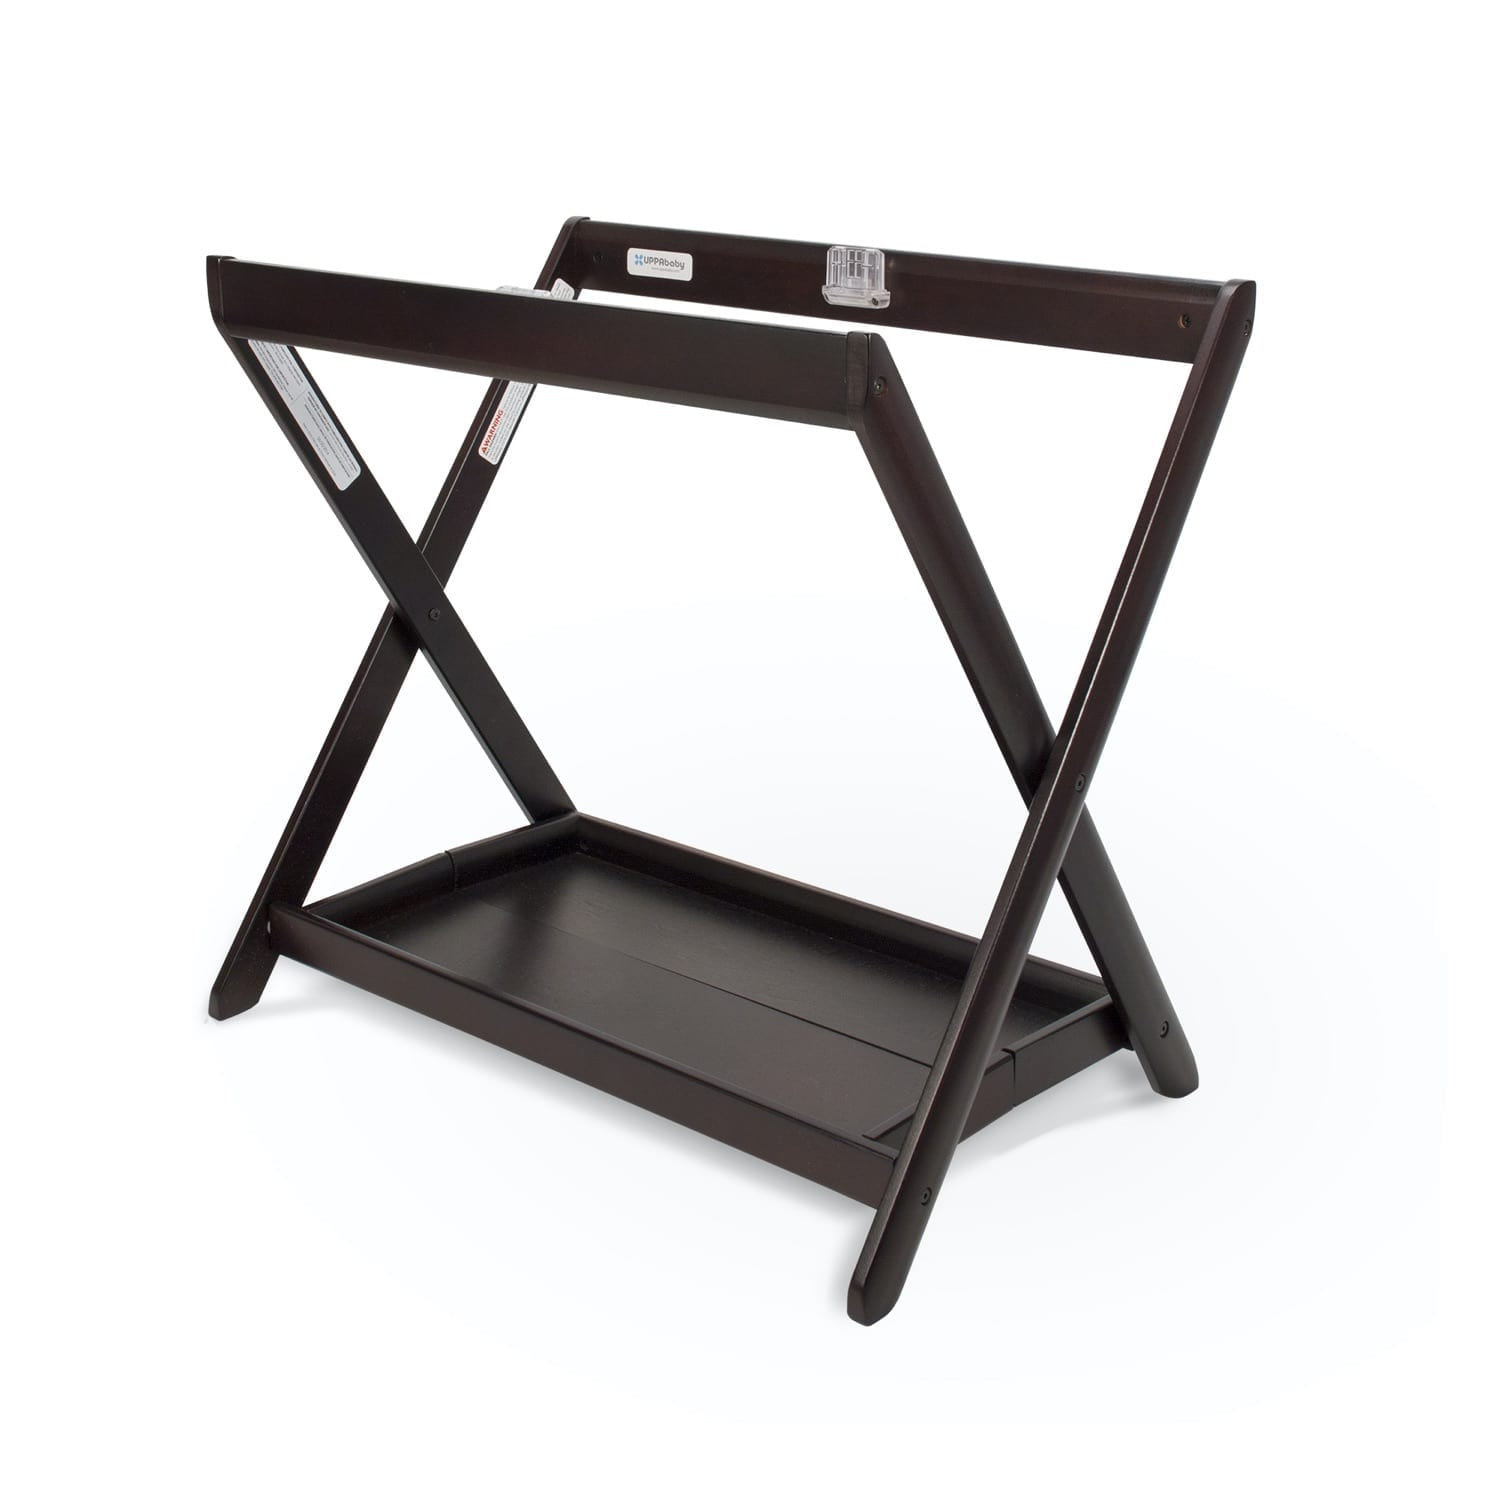 UPPAbaby Bassinet Stand, Espresso product image